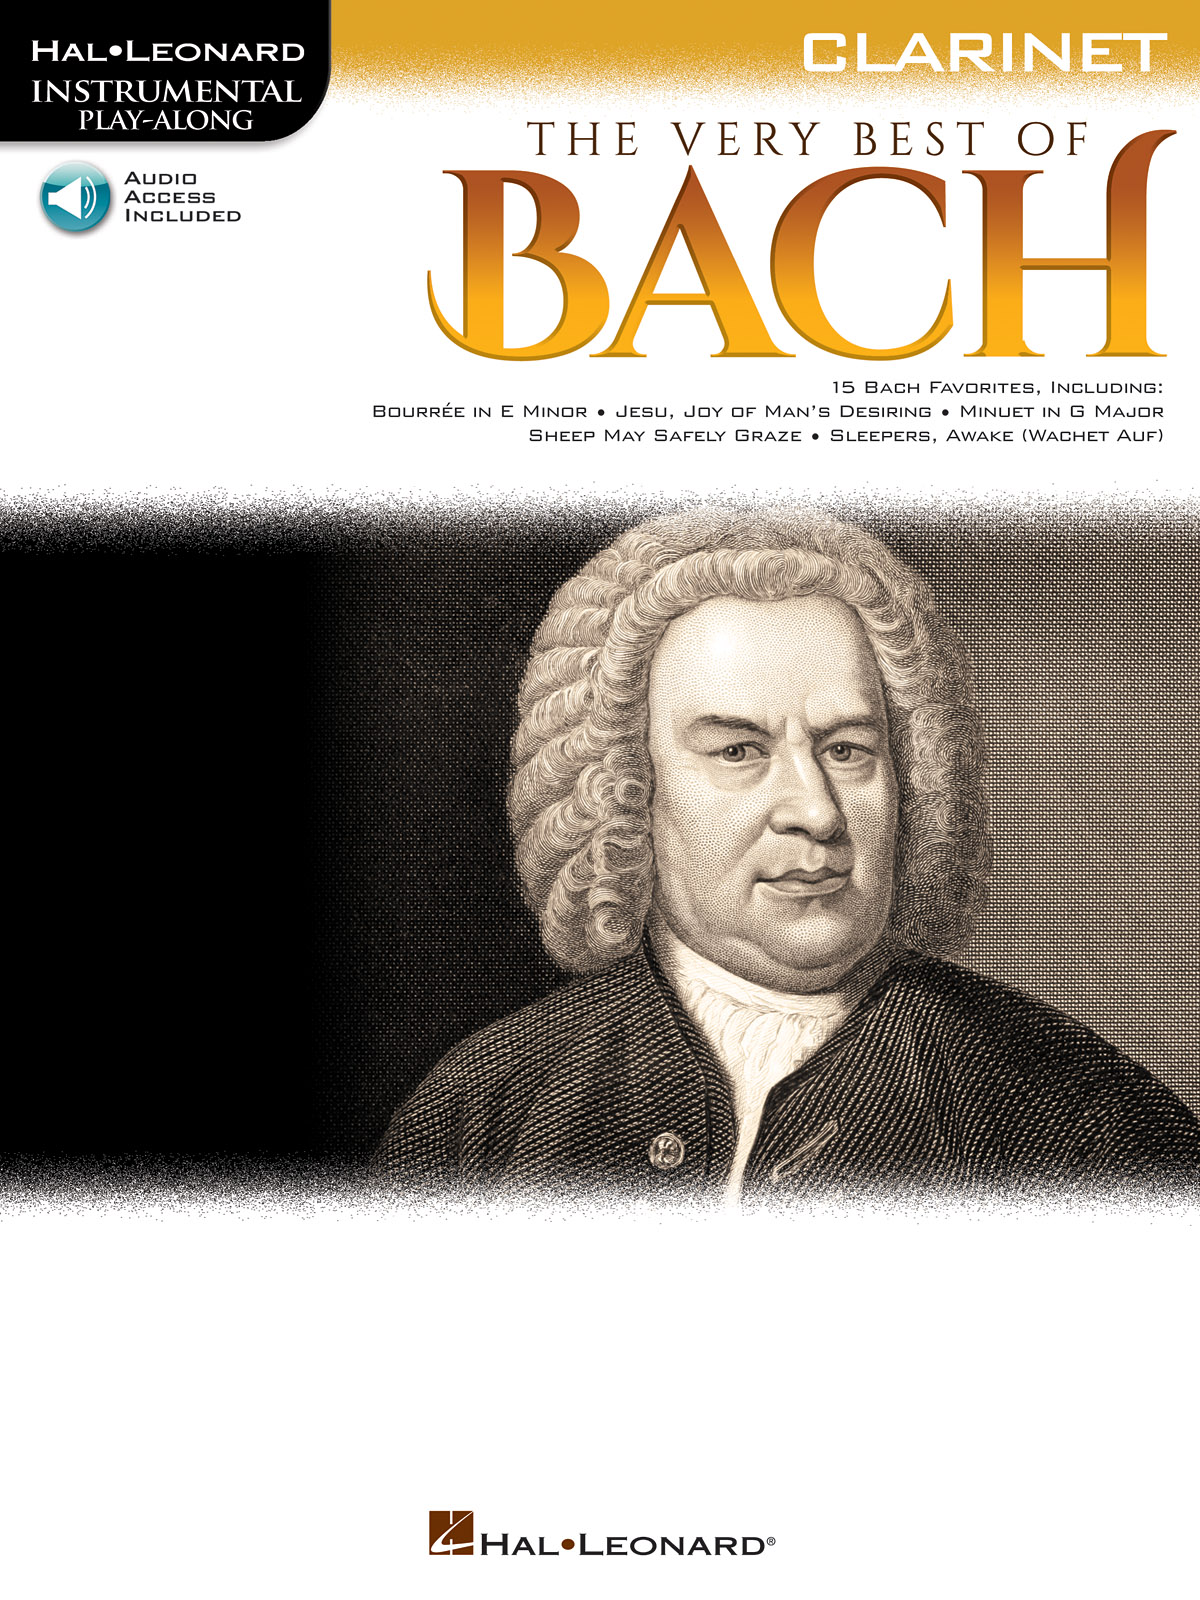 The Very Best of Bach - Clarinet: Clarinet Solo: Instrumental Album